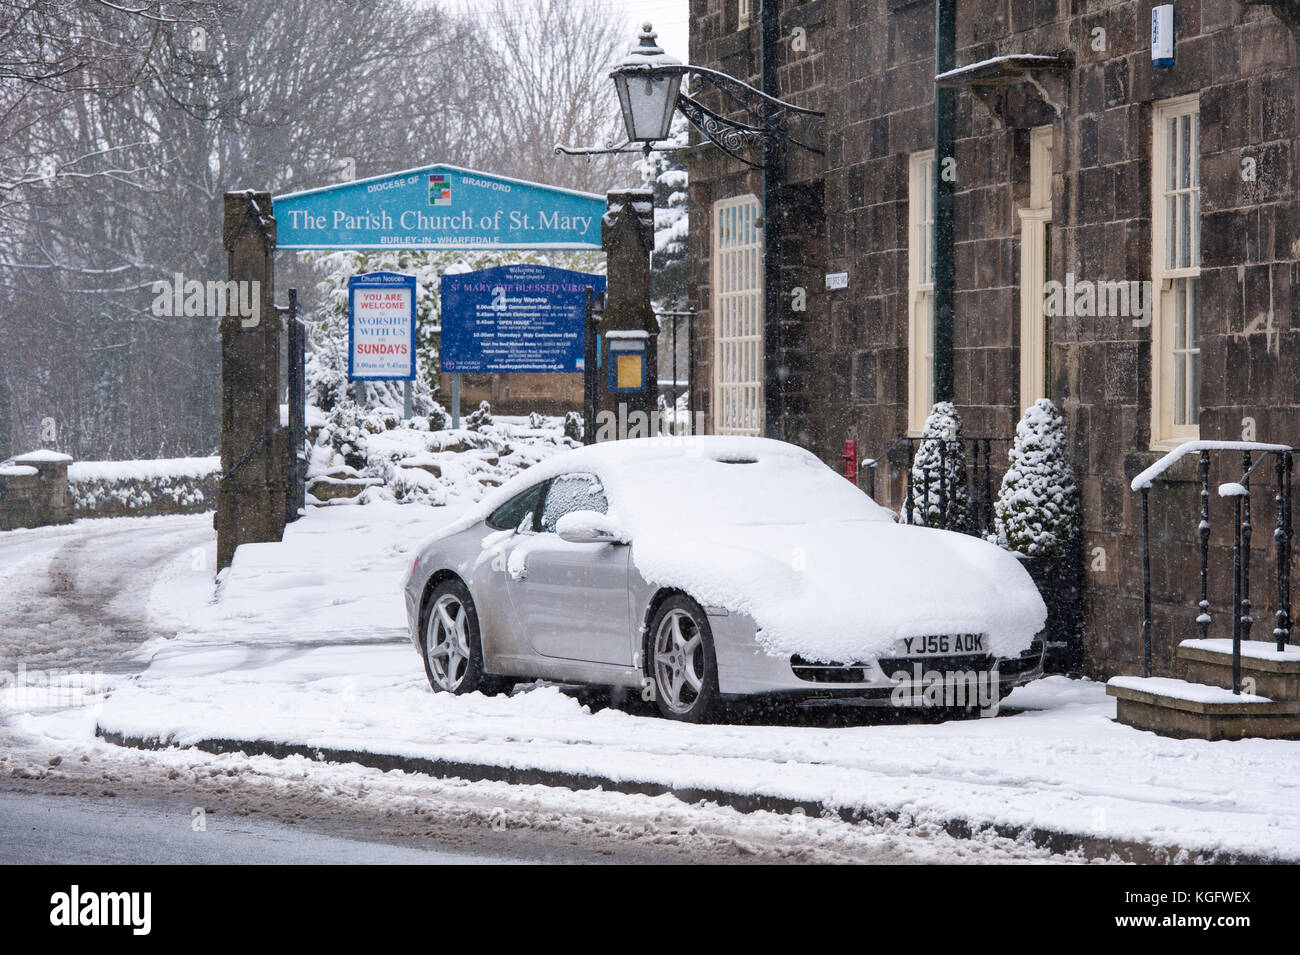 Cold, snowy winter day with snow-covered car parked outside stone cottages & church gate in village - Burley - Stock Image